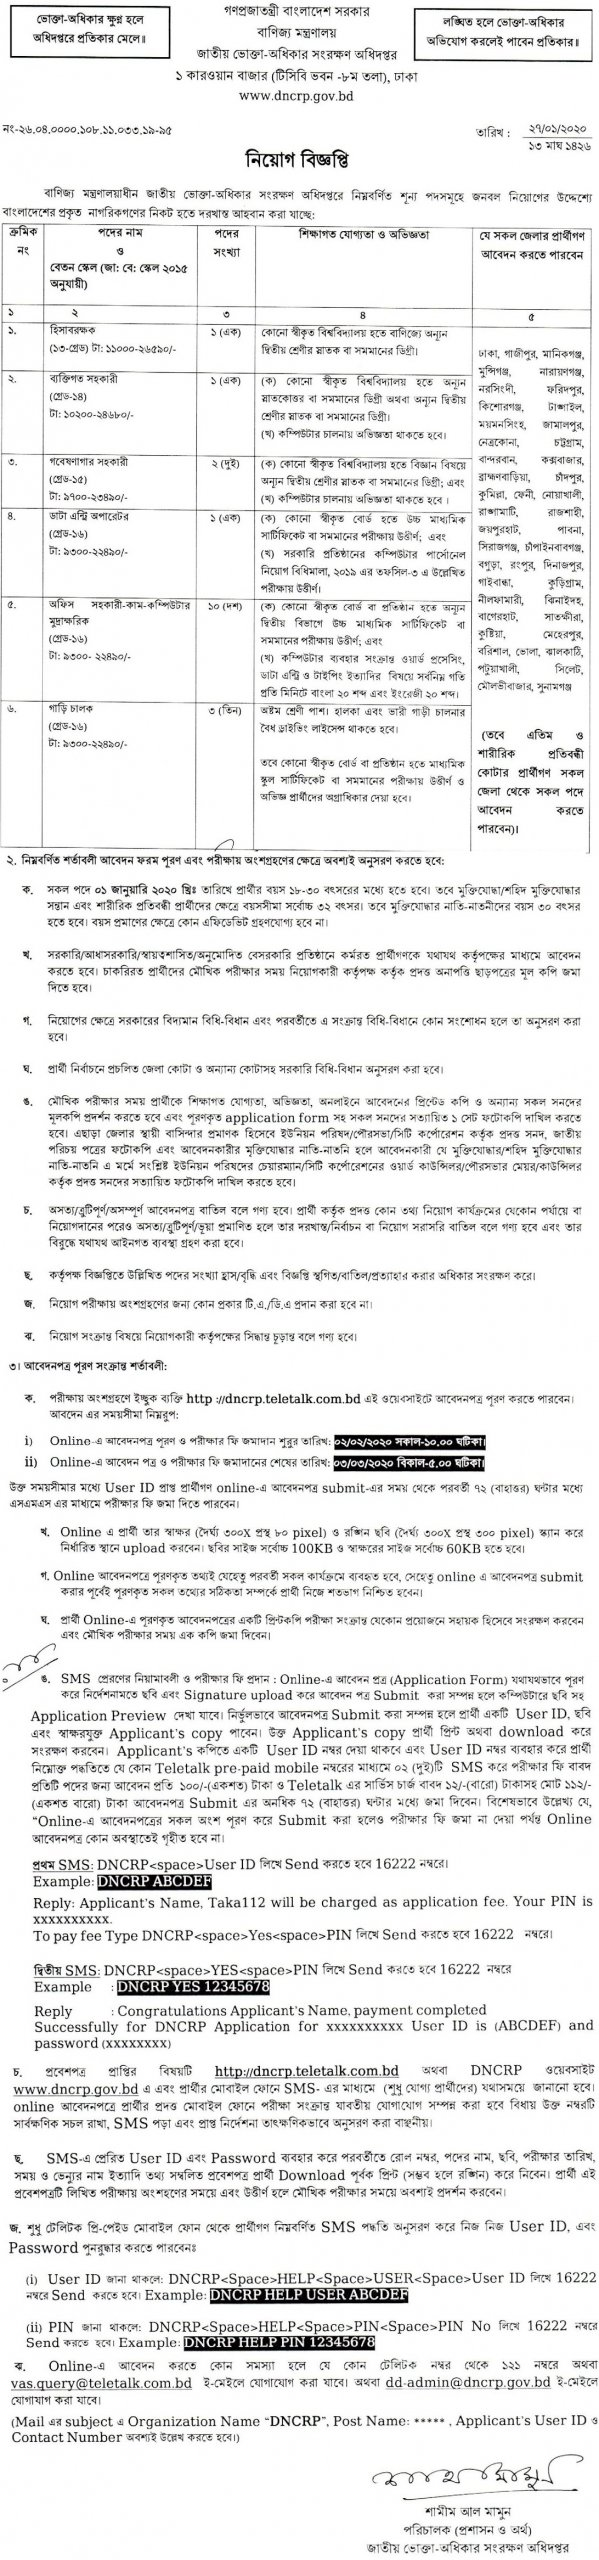 Directorate of National Consumer Rights Protection Job Circular 2020